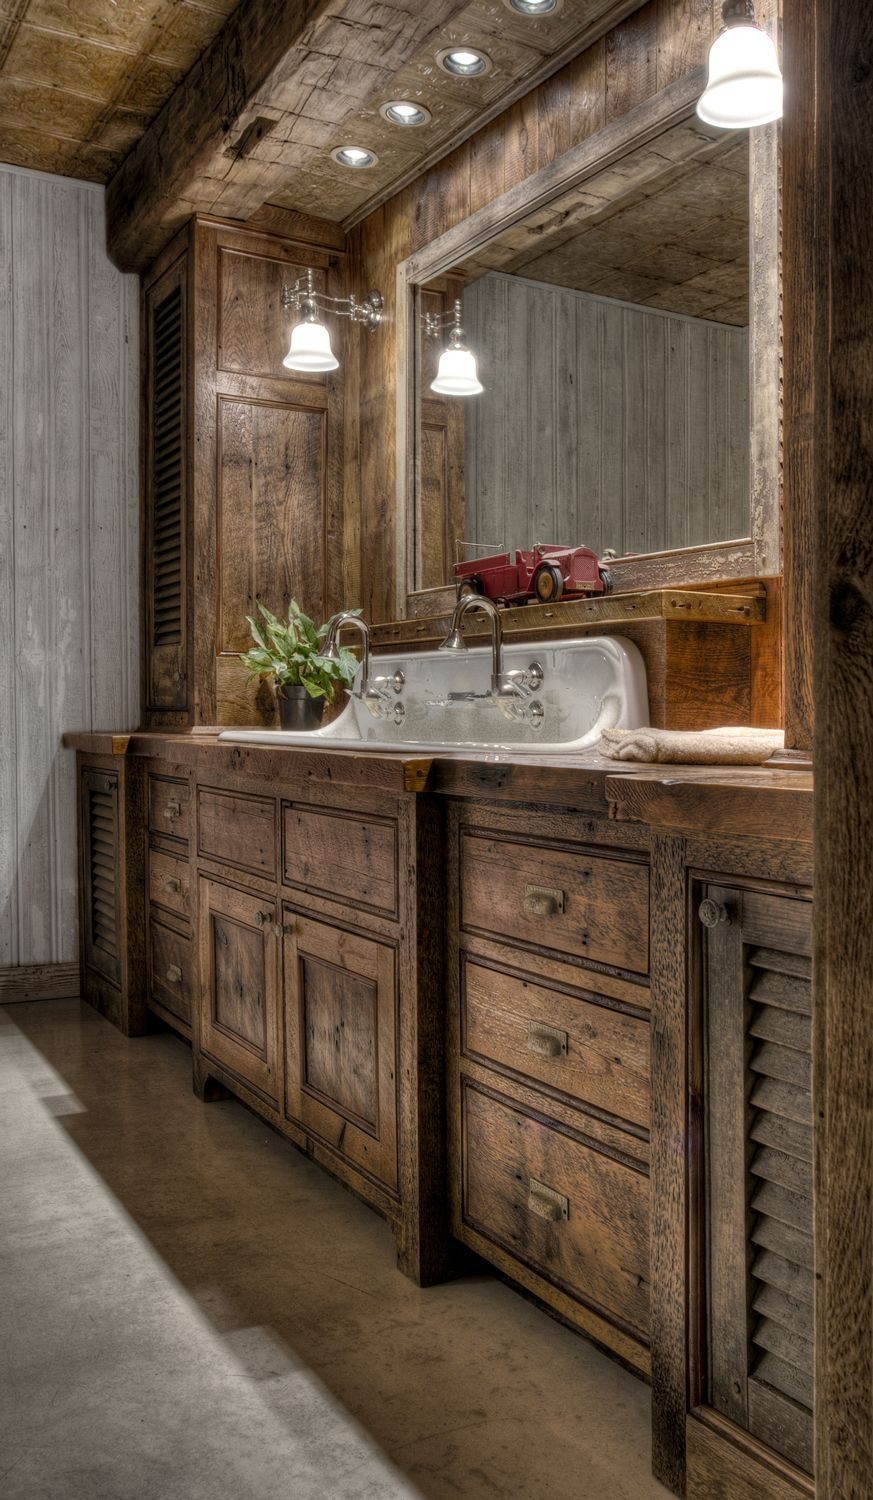 Big Wood Timber Frames Doors Furniture Custom Cabinetry Sink